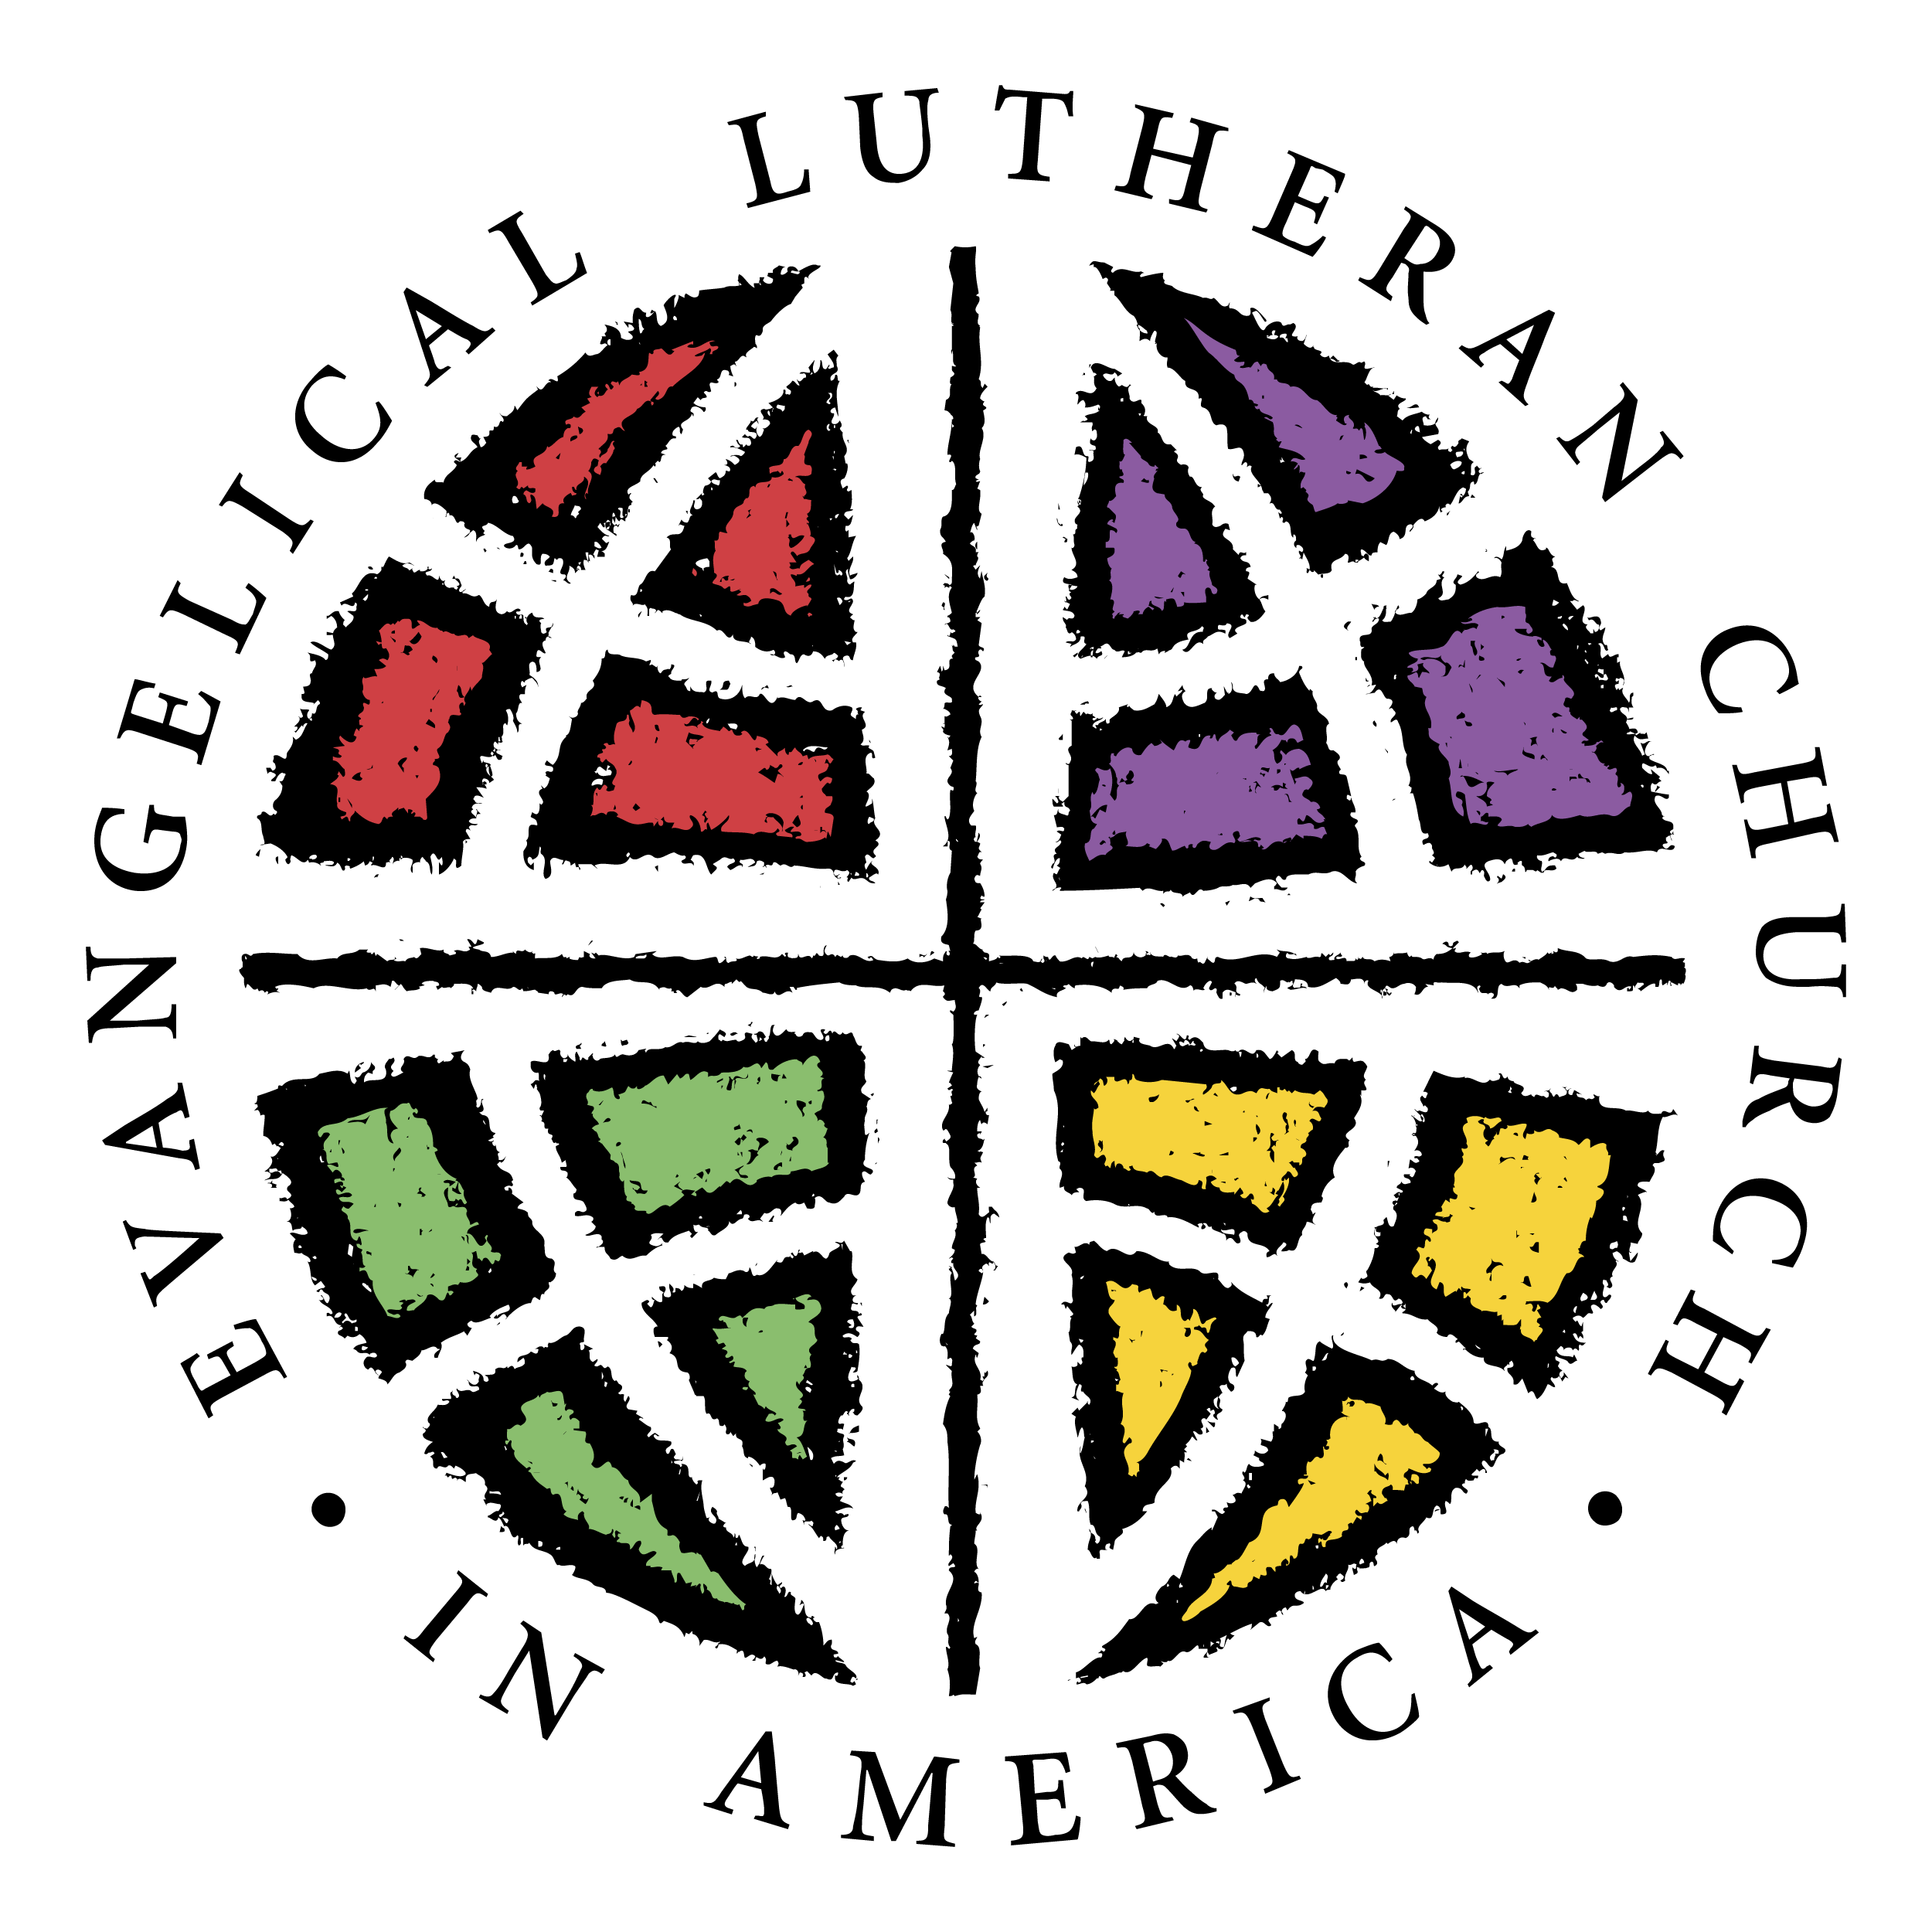 Evangelical Lutheran Church in America - The Evangelical Lutheran Church in America (ELCA) is one of the largest Christian denominations in the United States, with about 4 million members in nearly 10,000 congregations across the United States, Puerto Rico and the U.S. Virgin Islands.